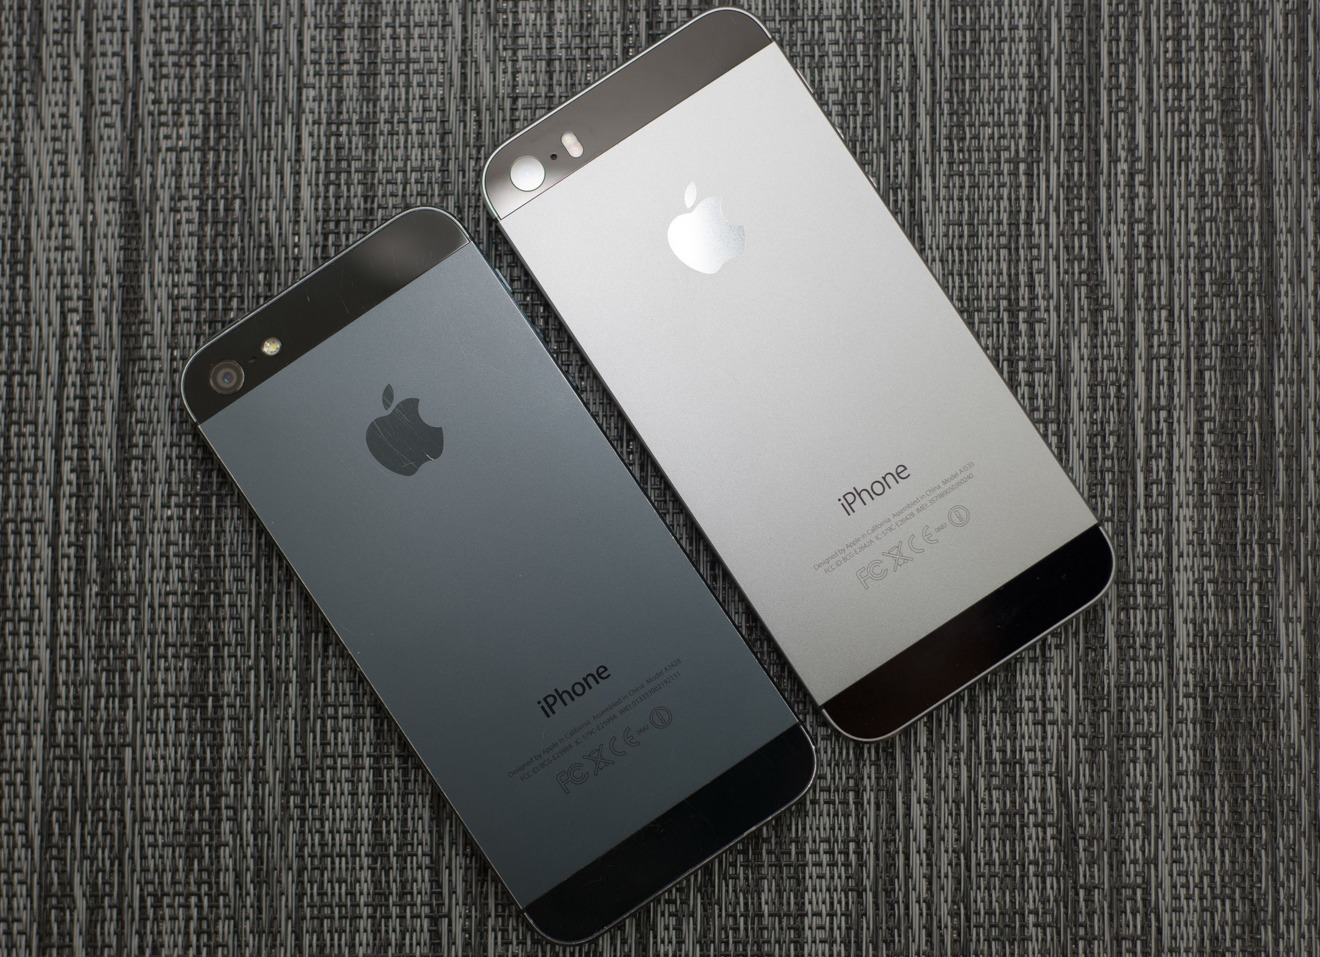 Rumor: Apple's space gray 'iPhone 7' will be a 'much darker color' |  AppleInsider